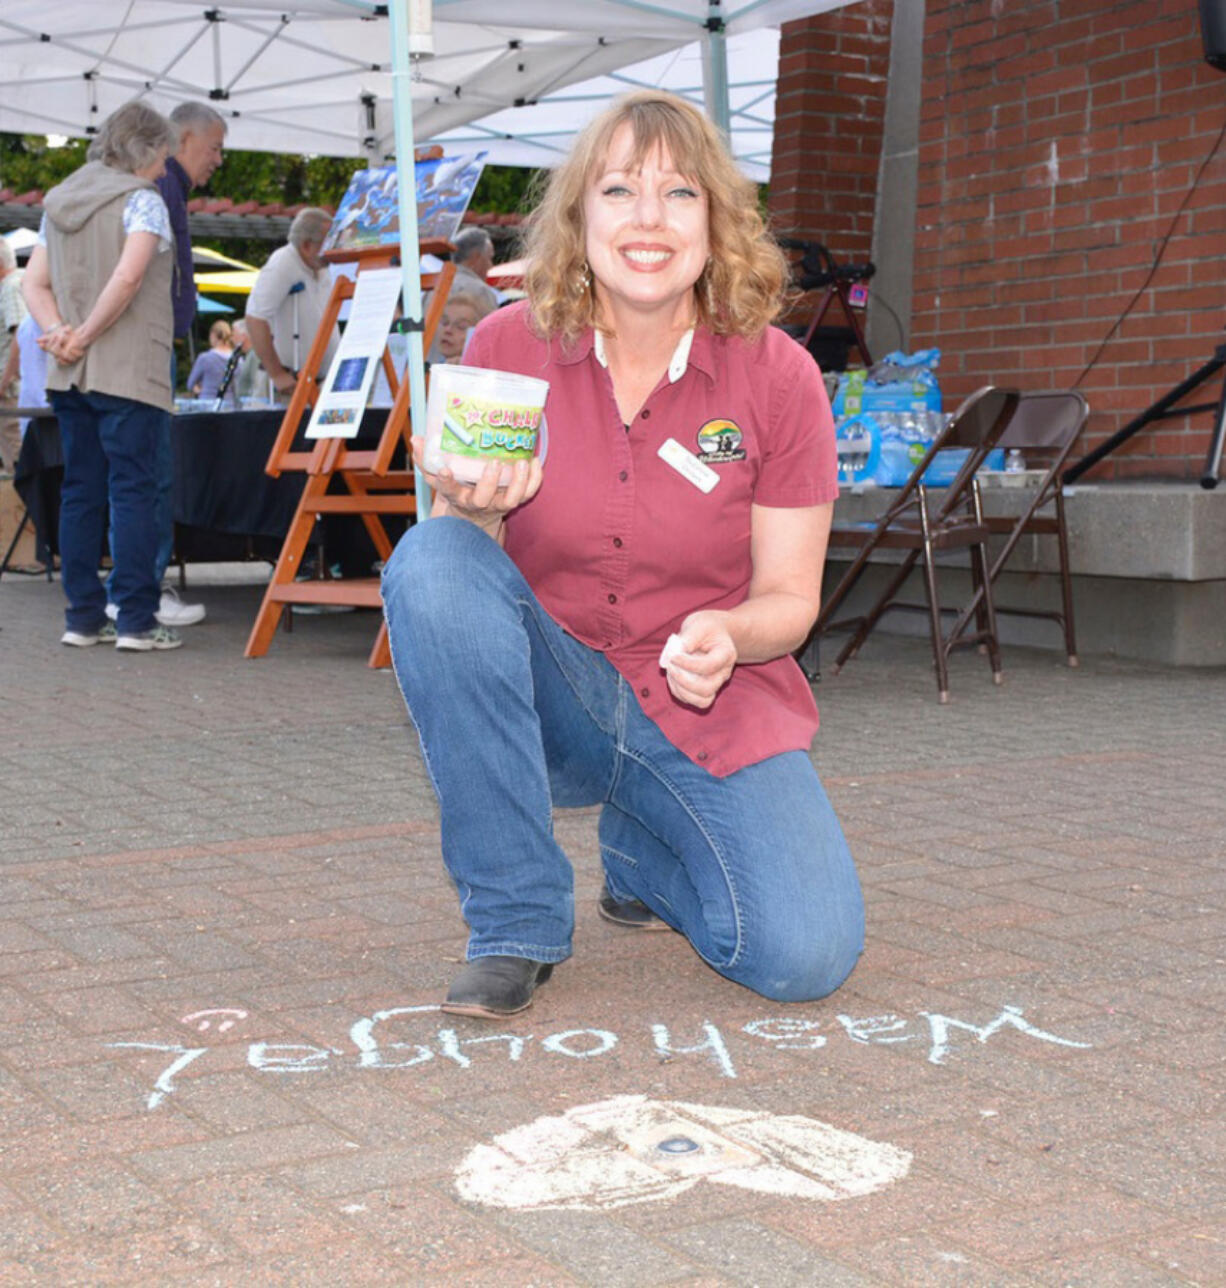 WASHOUGAL: Washougal Arts and Culture Alliance artist honoree Suzanne Grover at the 2018 Washougal Art Festival.